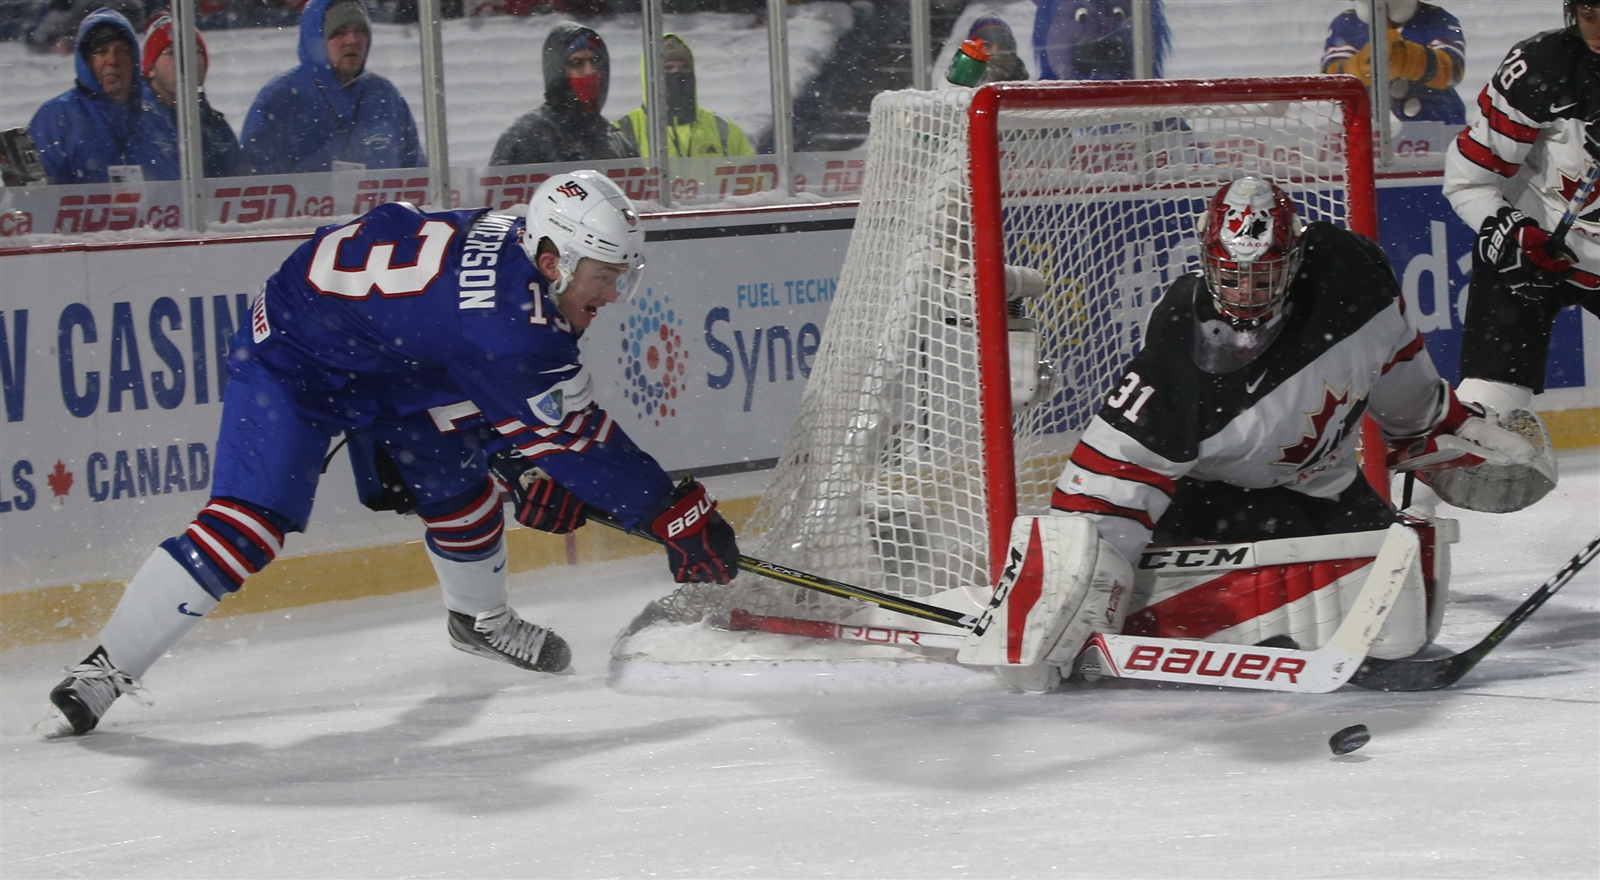 Brady Tkachuk #7 of United States scores a goal against Carter Hart #31 of Canada in overtime shootout  at New Era Field in Orchard Park on Friday, Dec. 29, 2017.